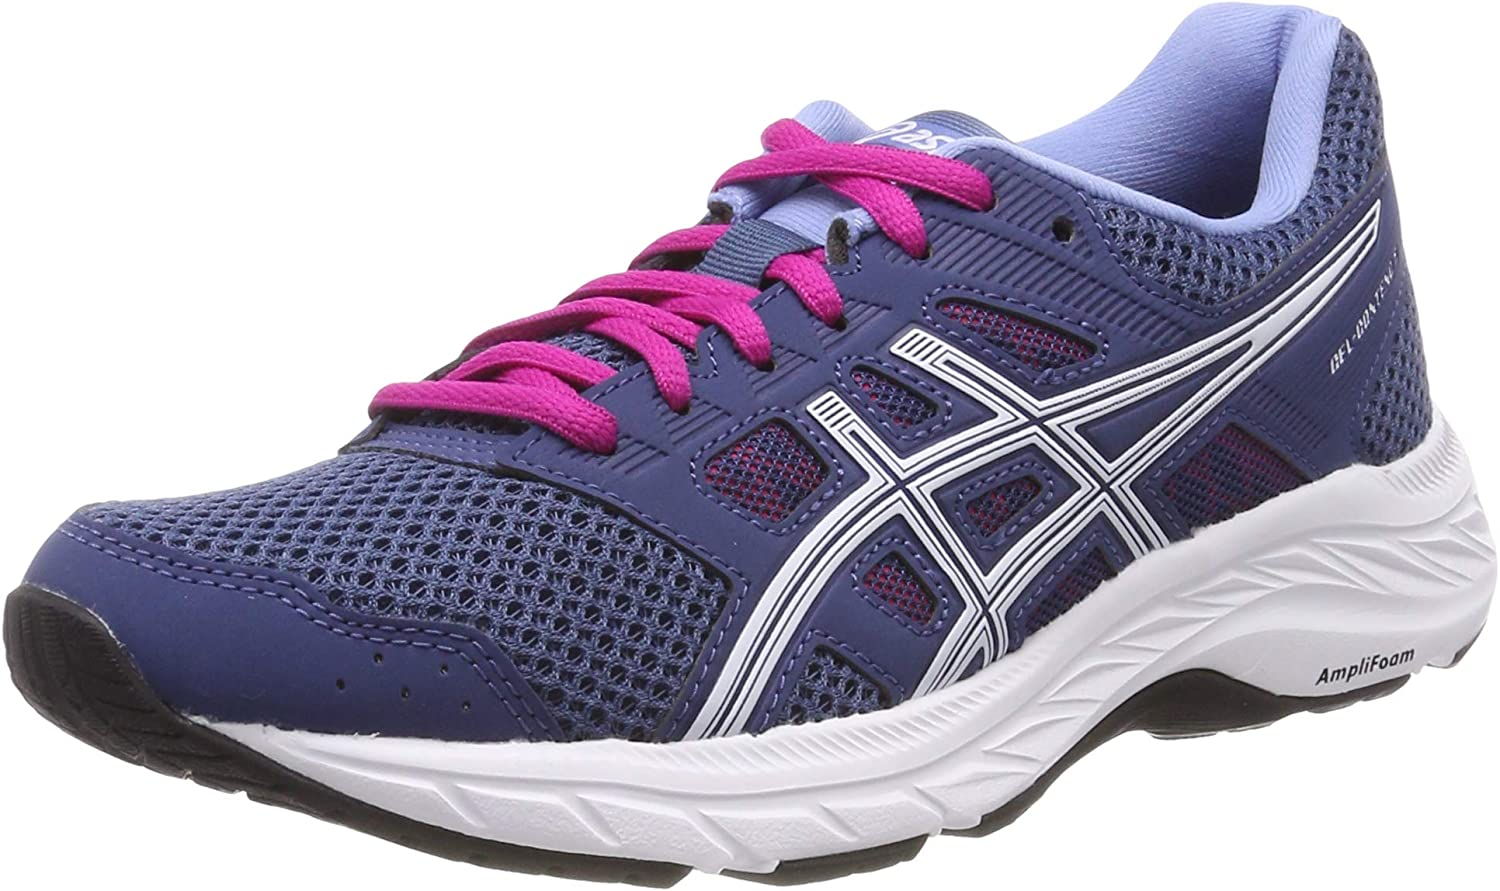 ASICS Womens Gel-Contend 5 Lightweight Breathable Running shoes